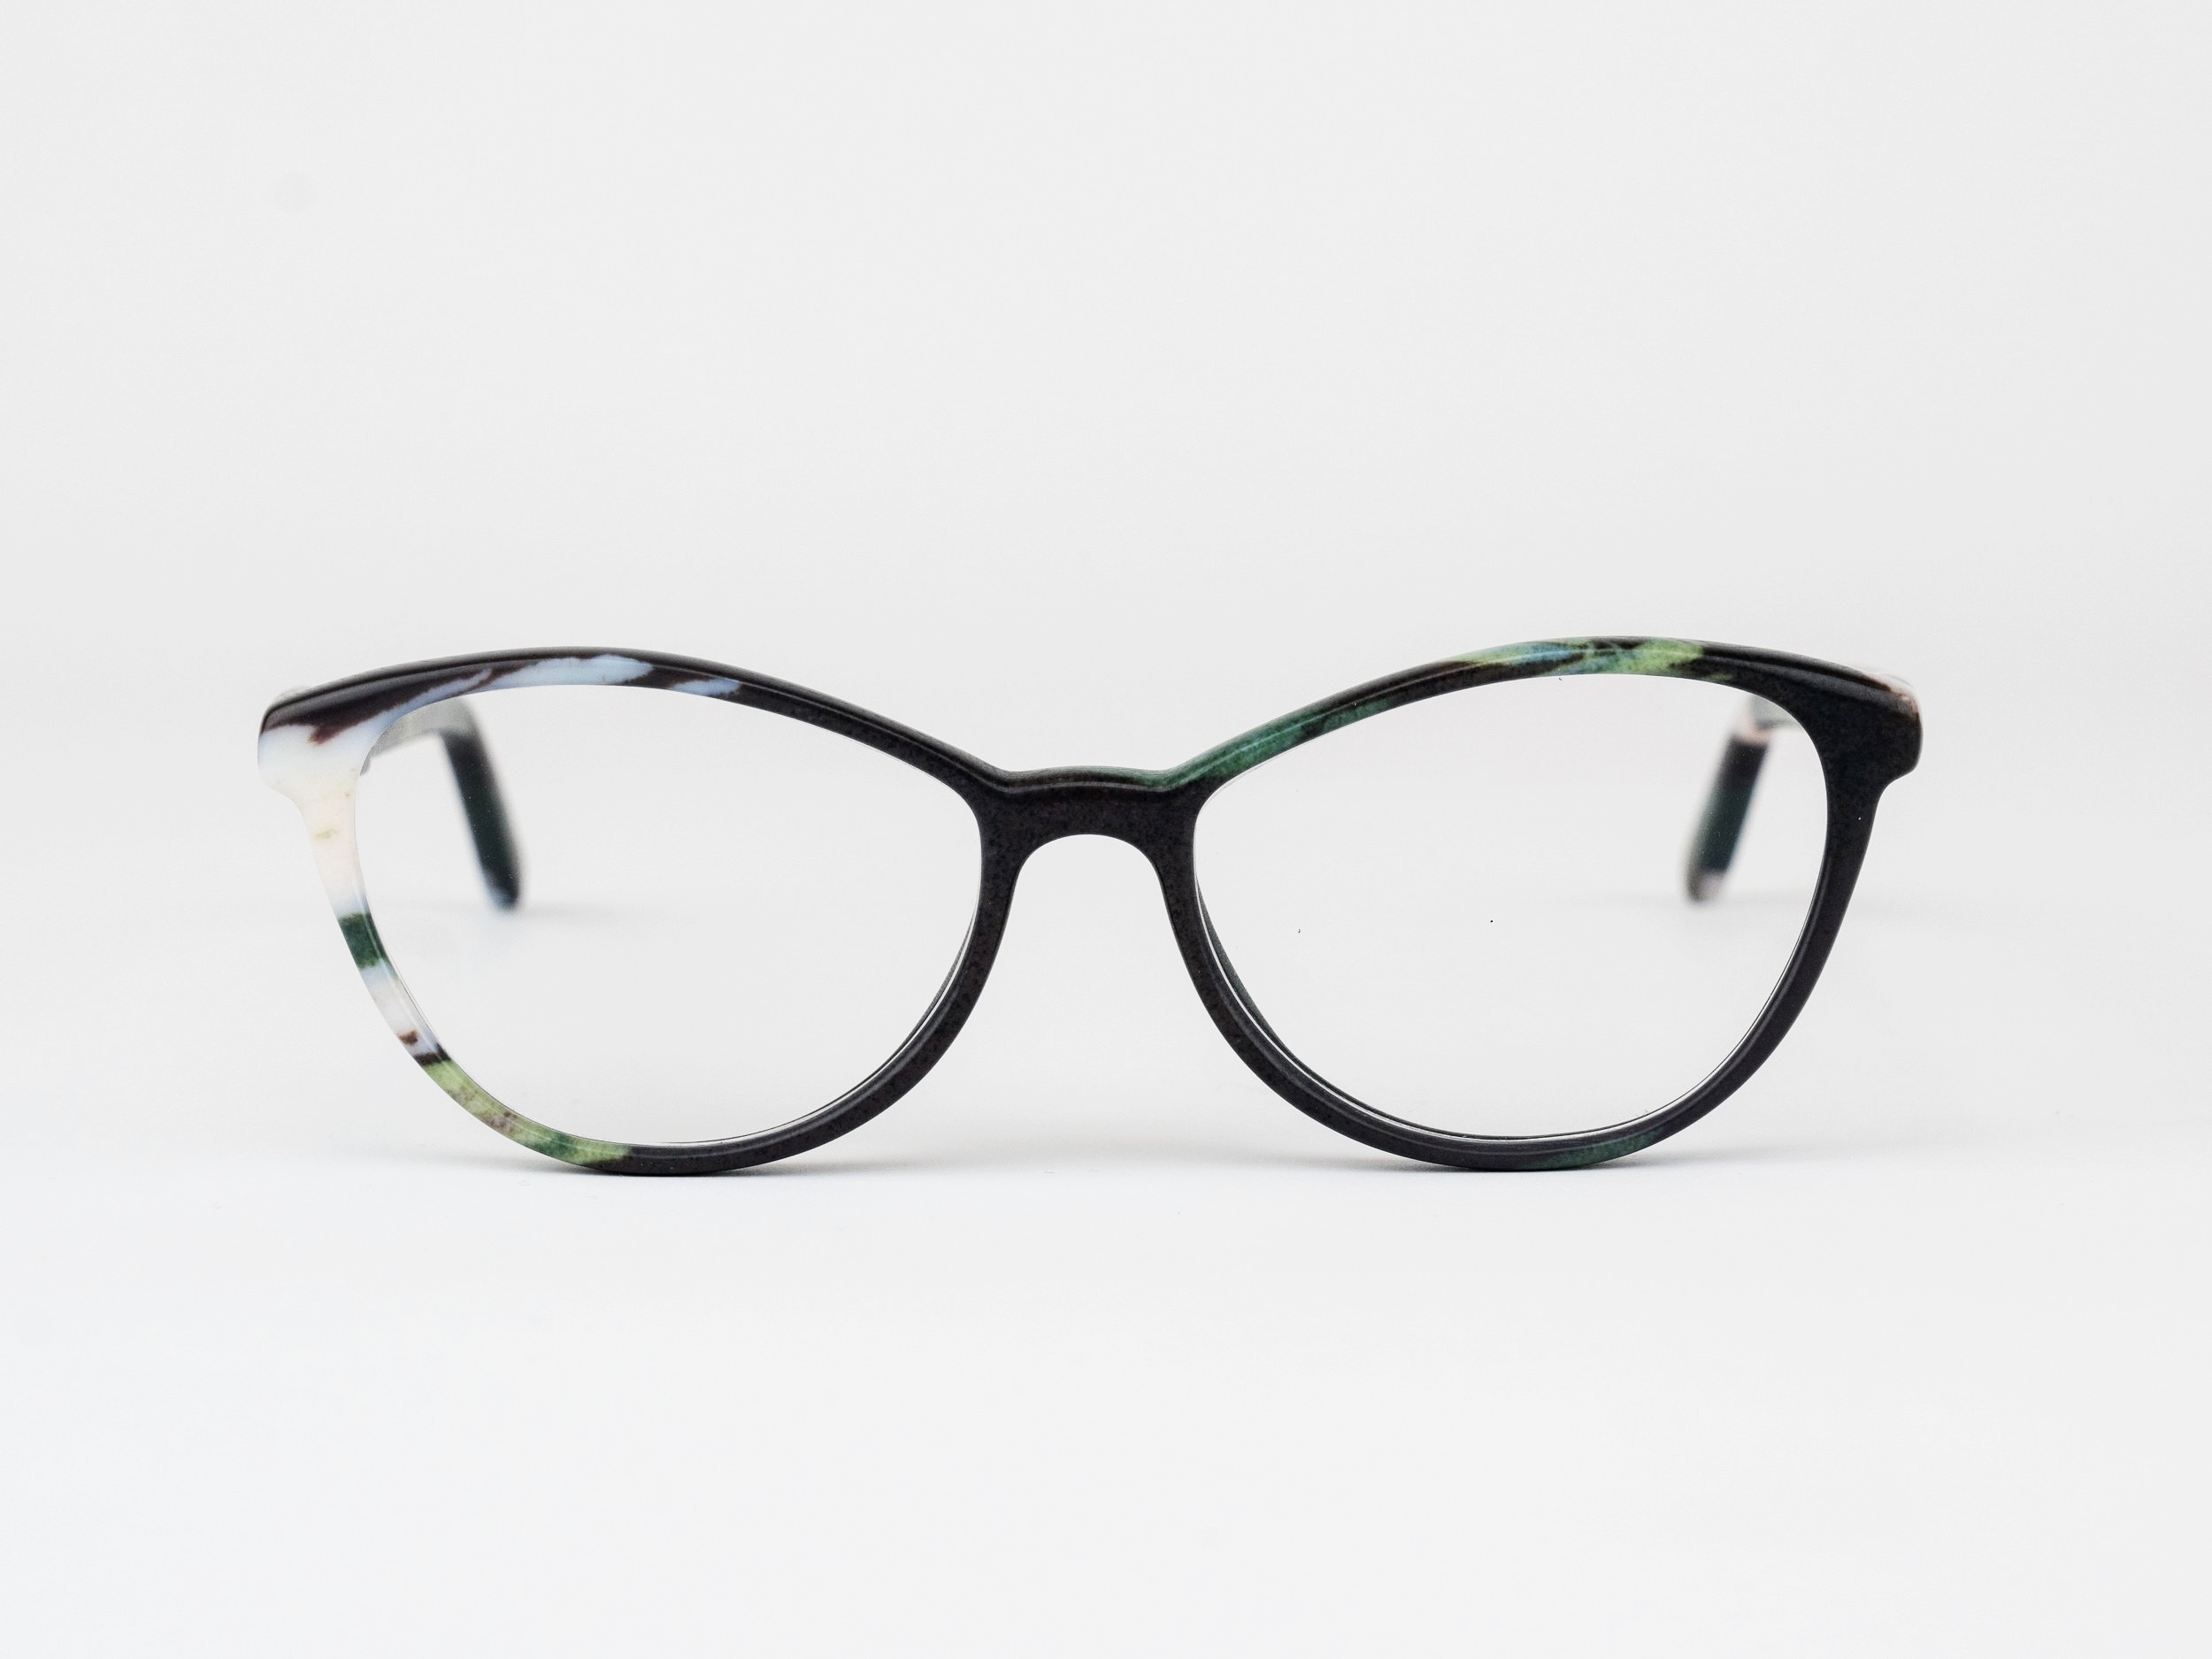 Austen - For those who flout sensibility. The Austen is an elegant, head turning cateye frame inspired by the enduring author.Available in any color or pattern that your heart desires.